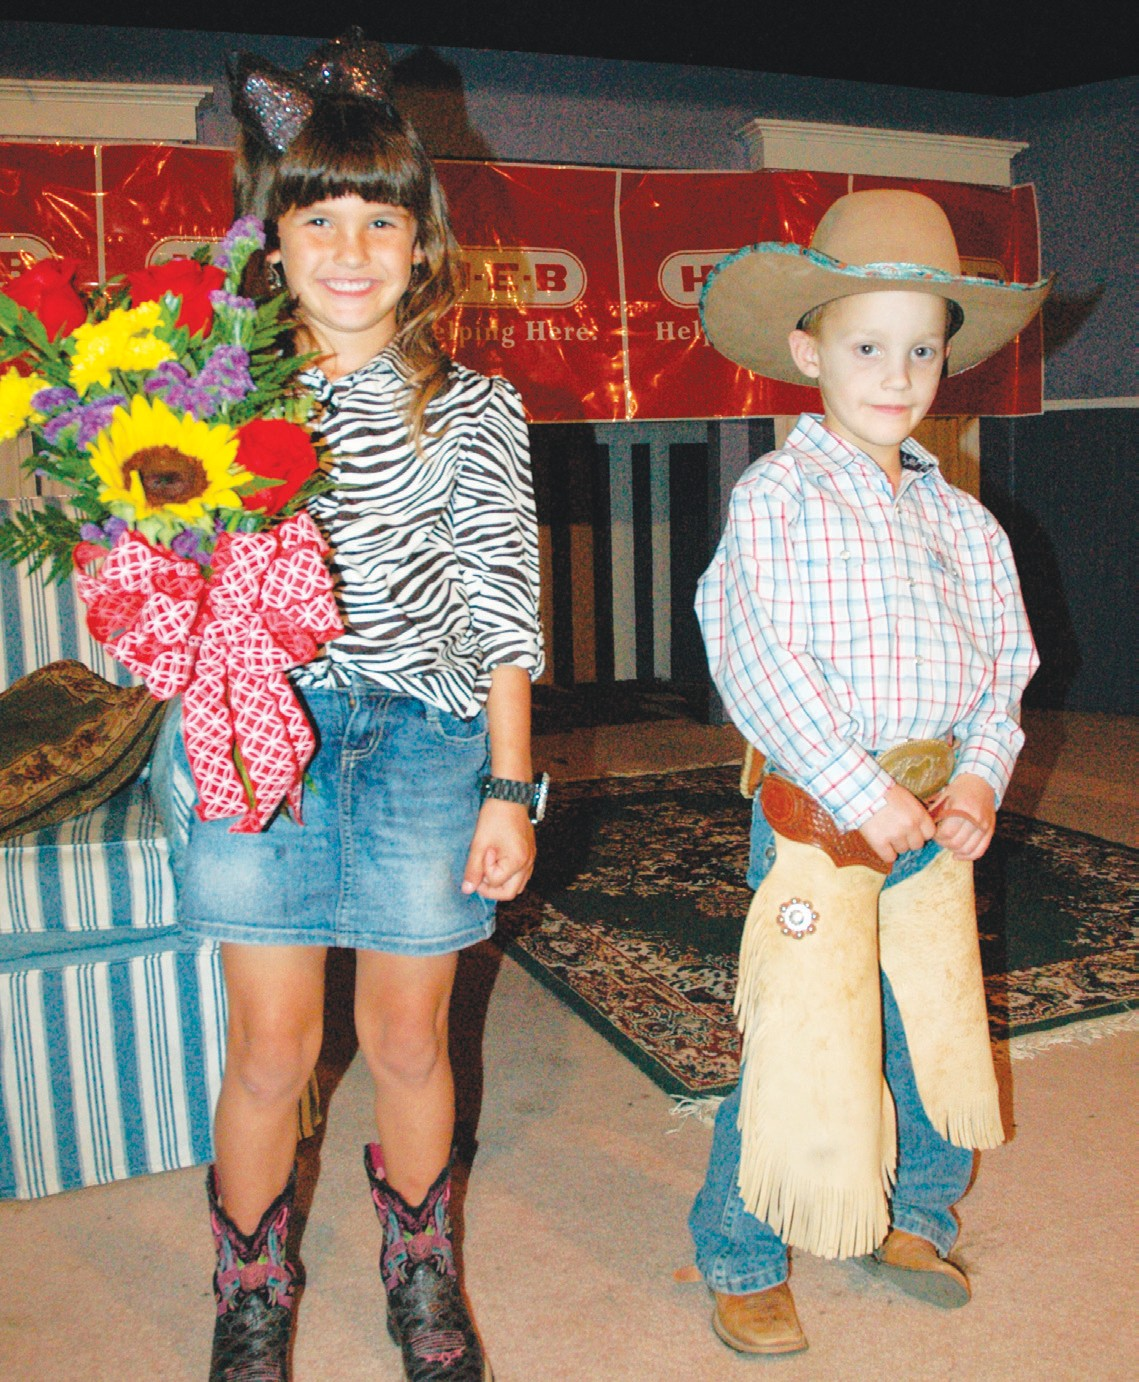 Mia Martinez and Jack Fluitt were named Lil' Mr. and Miss Cowboy Homecoming pageant this past Sunday. Mia is the daughter of Megan and Rene Martinez Jr.. Jack is the son of Kate and Jonathon Fluitt. The kids will help with the Cowboy Homecoming Queen's coronation next Thursday night at 7 p.m. before the Bull Ride Kick-off event.